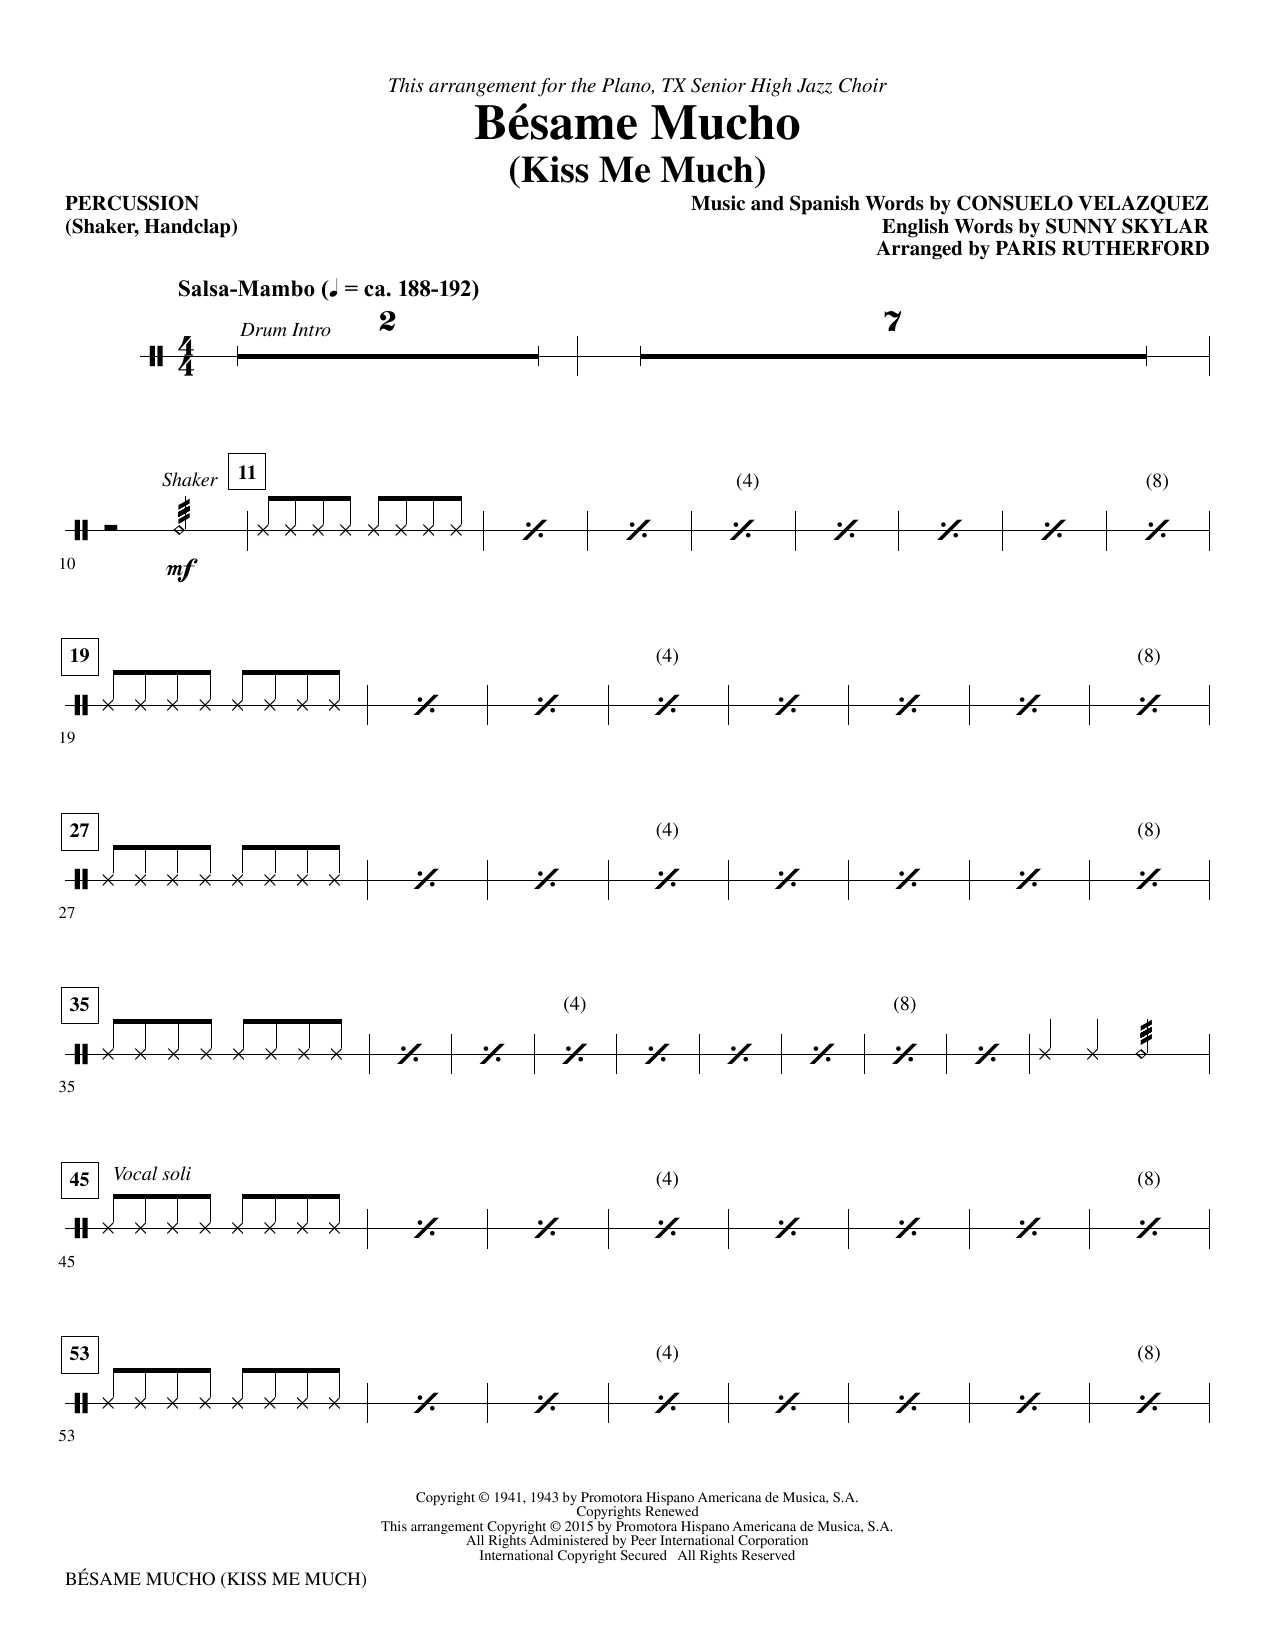 Paris Rutherford Besame Mucho (Kiss Me Much) - Percussion sheet music notes and chords. Download Printable PDF.